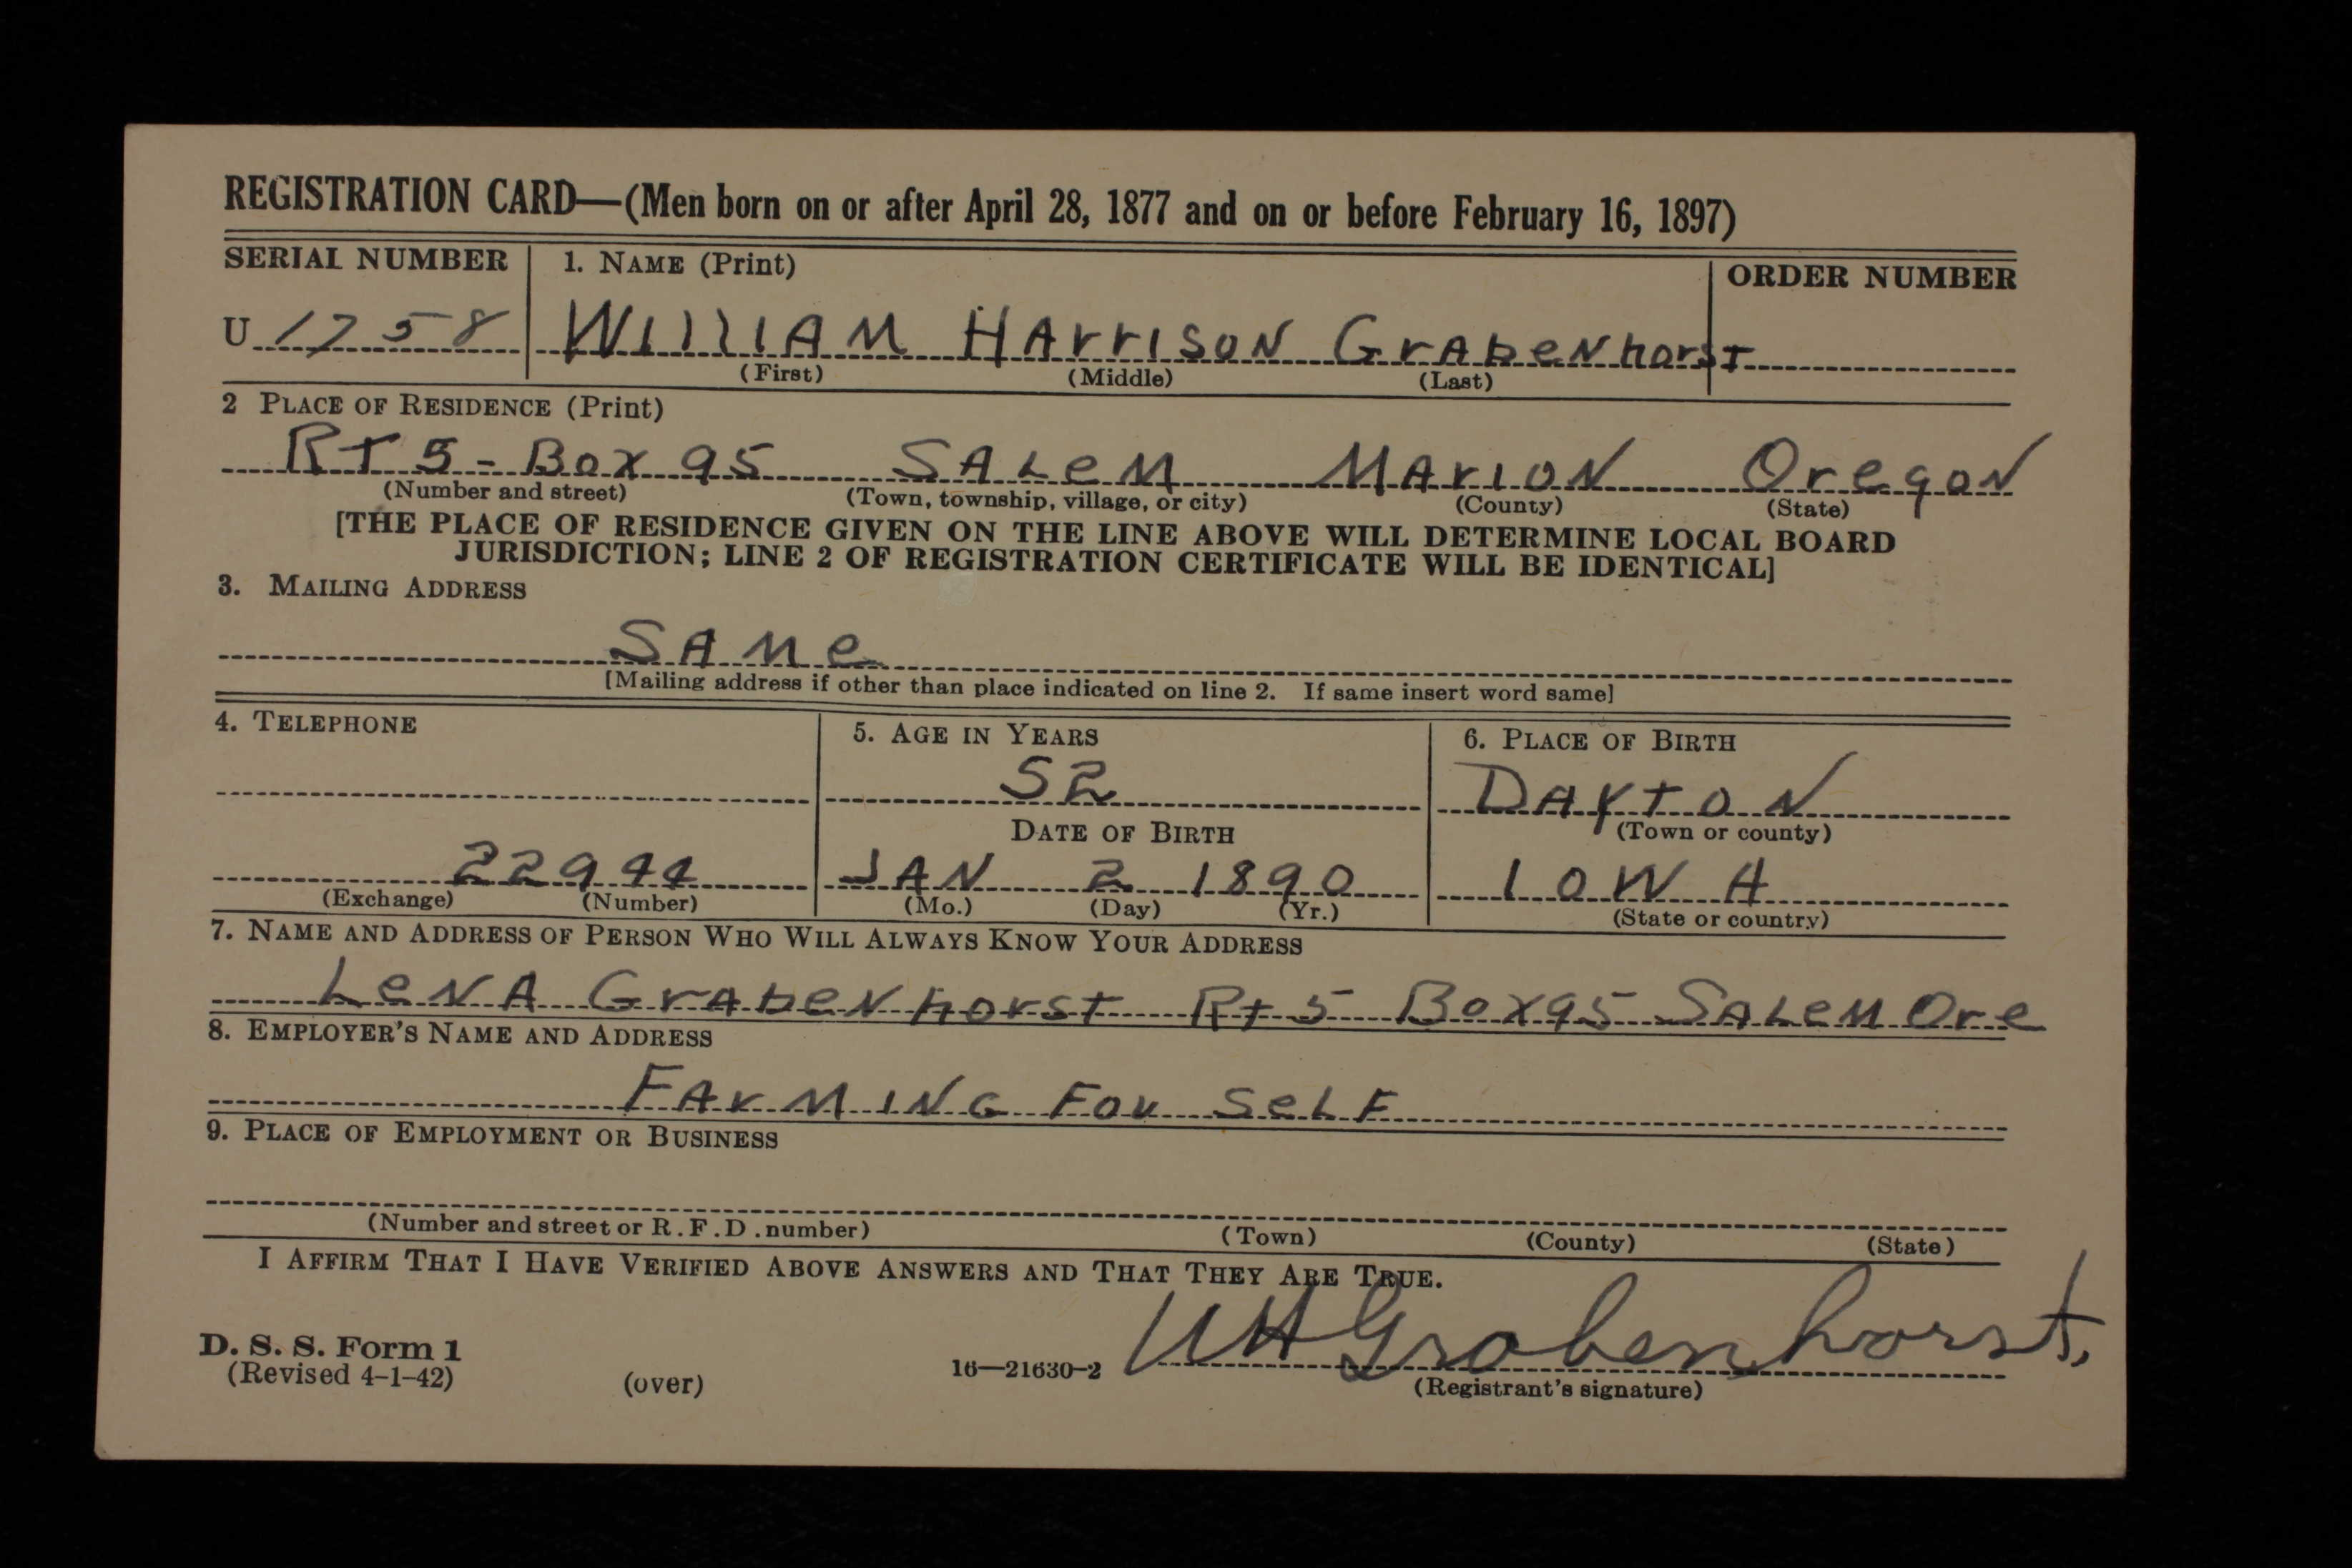 Descendents of henry george grabenhorst william harrison grabenhorst name william harrison grabenhorst birth date 2 jan 1890 birth place dayton iowa usa residence salem oregon usa race white xflitez Gallery